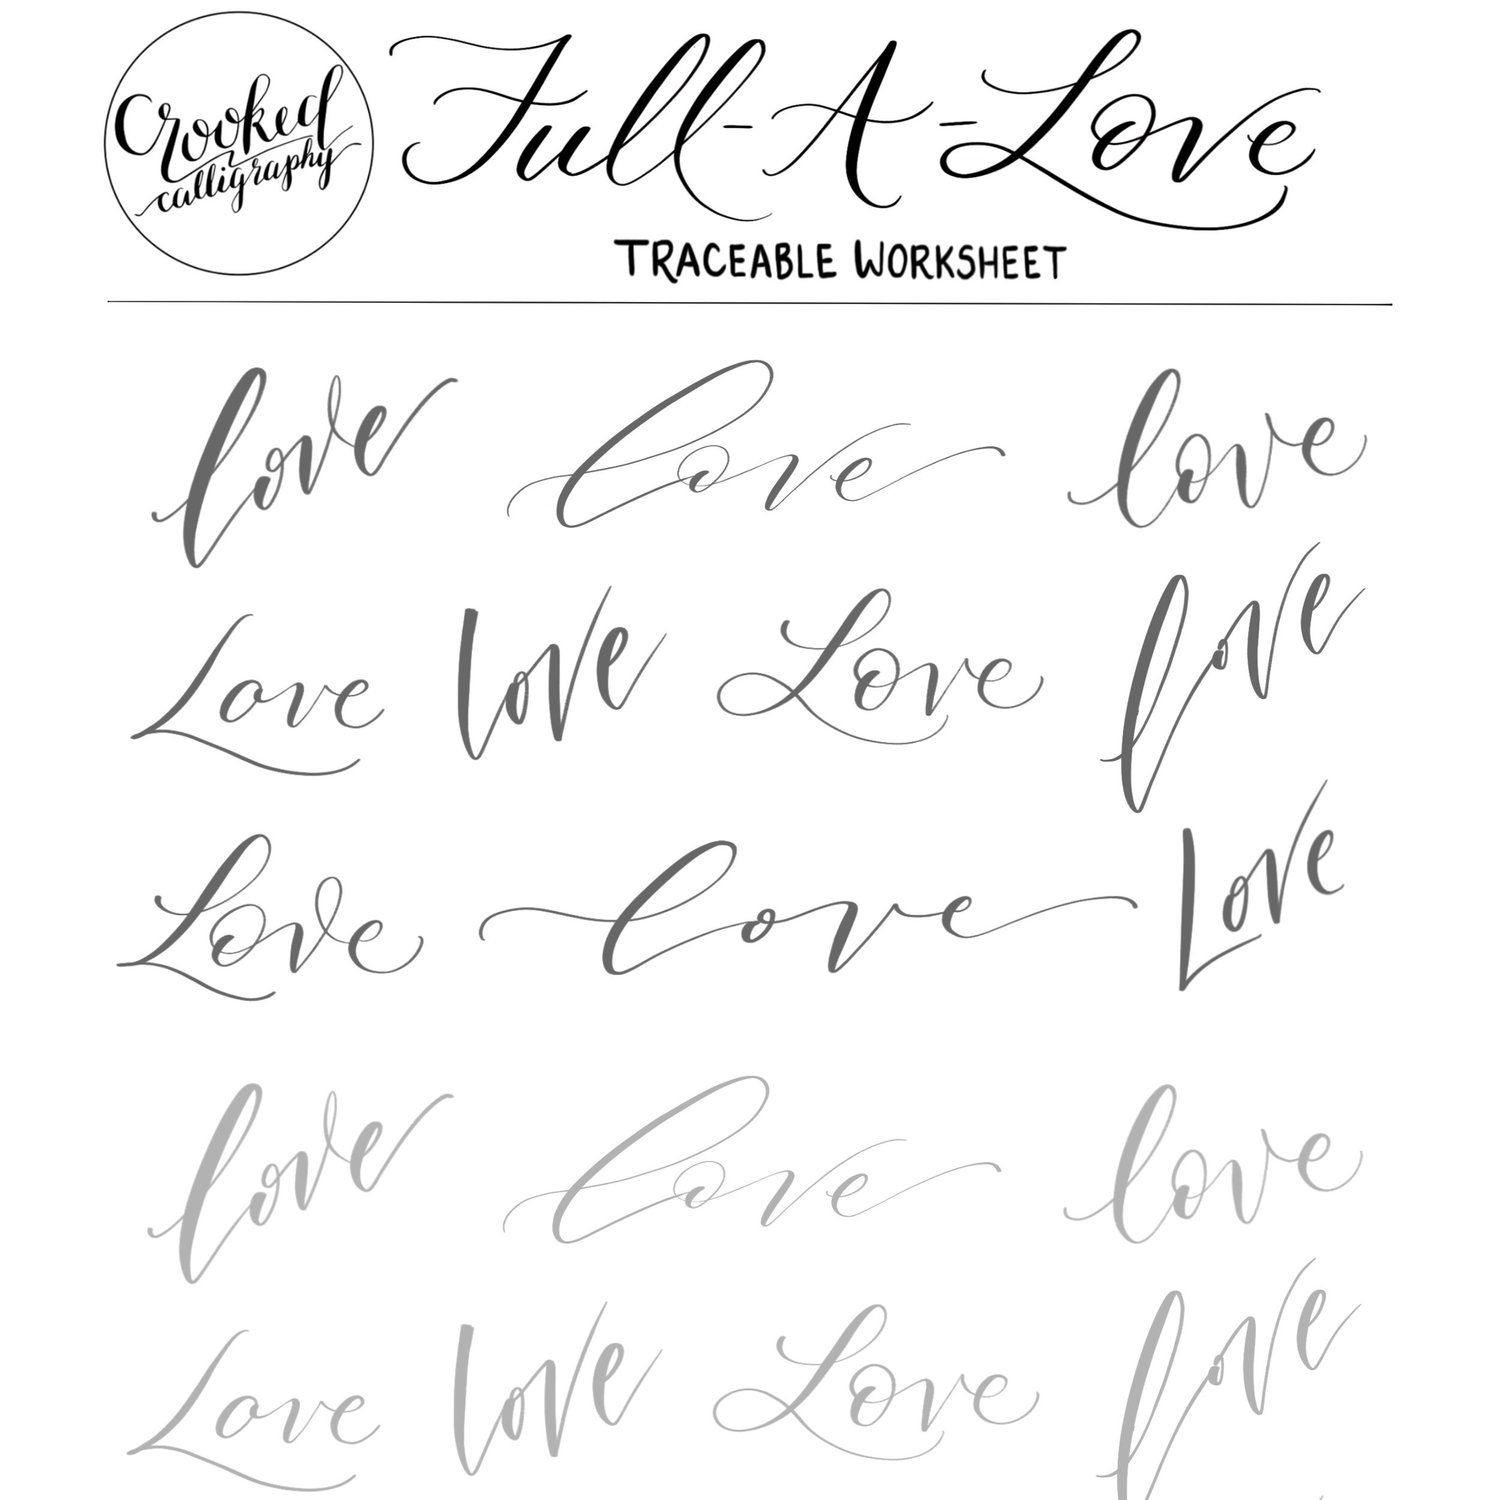 Love Traceable Worksheet